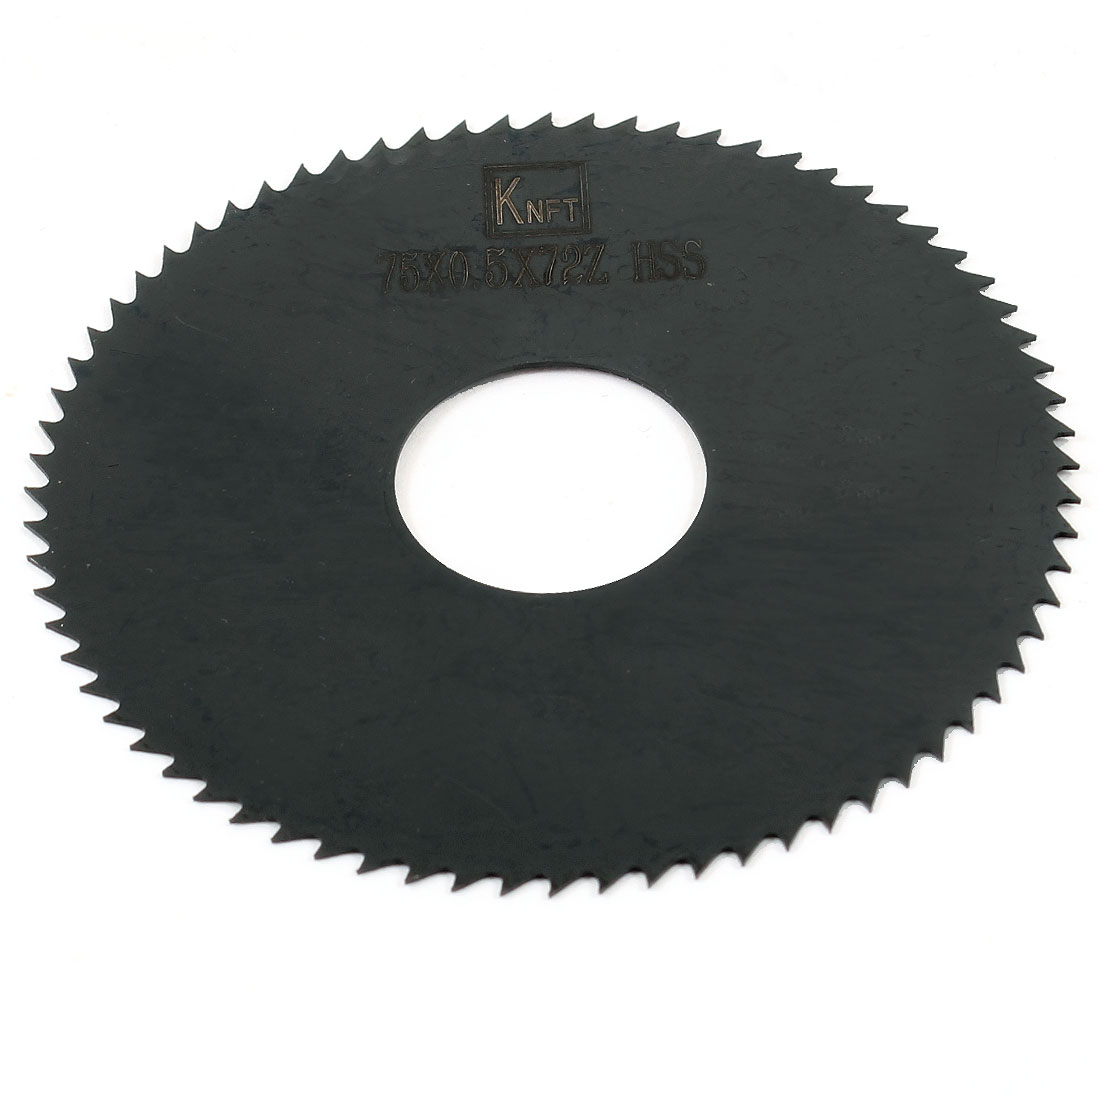 Hand Tool 75mm x 22mm x 0.5mm 72 Peg Teeth HSS Slitting Saw